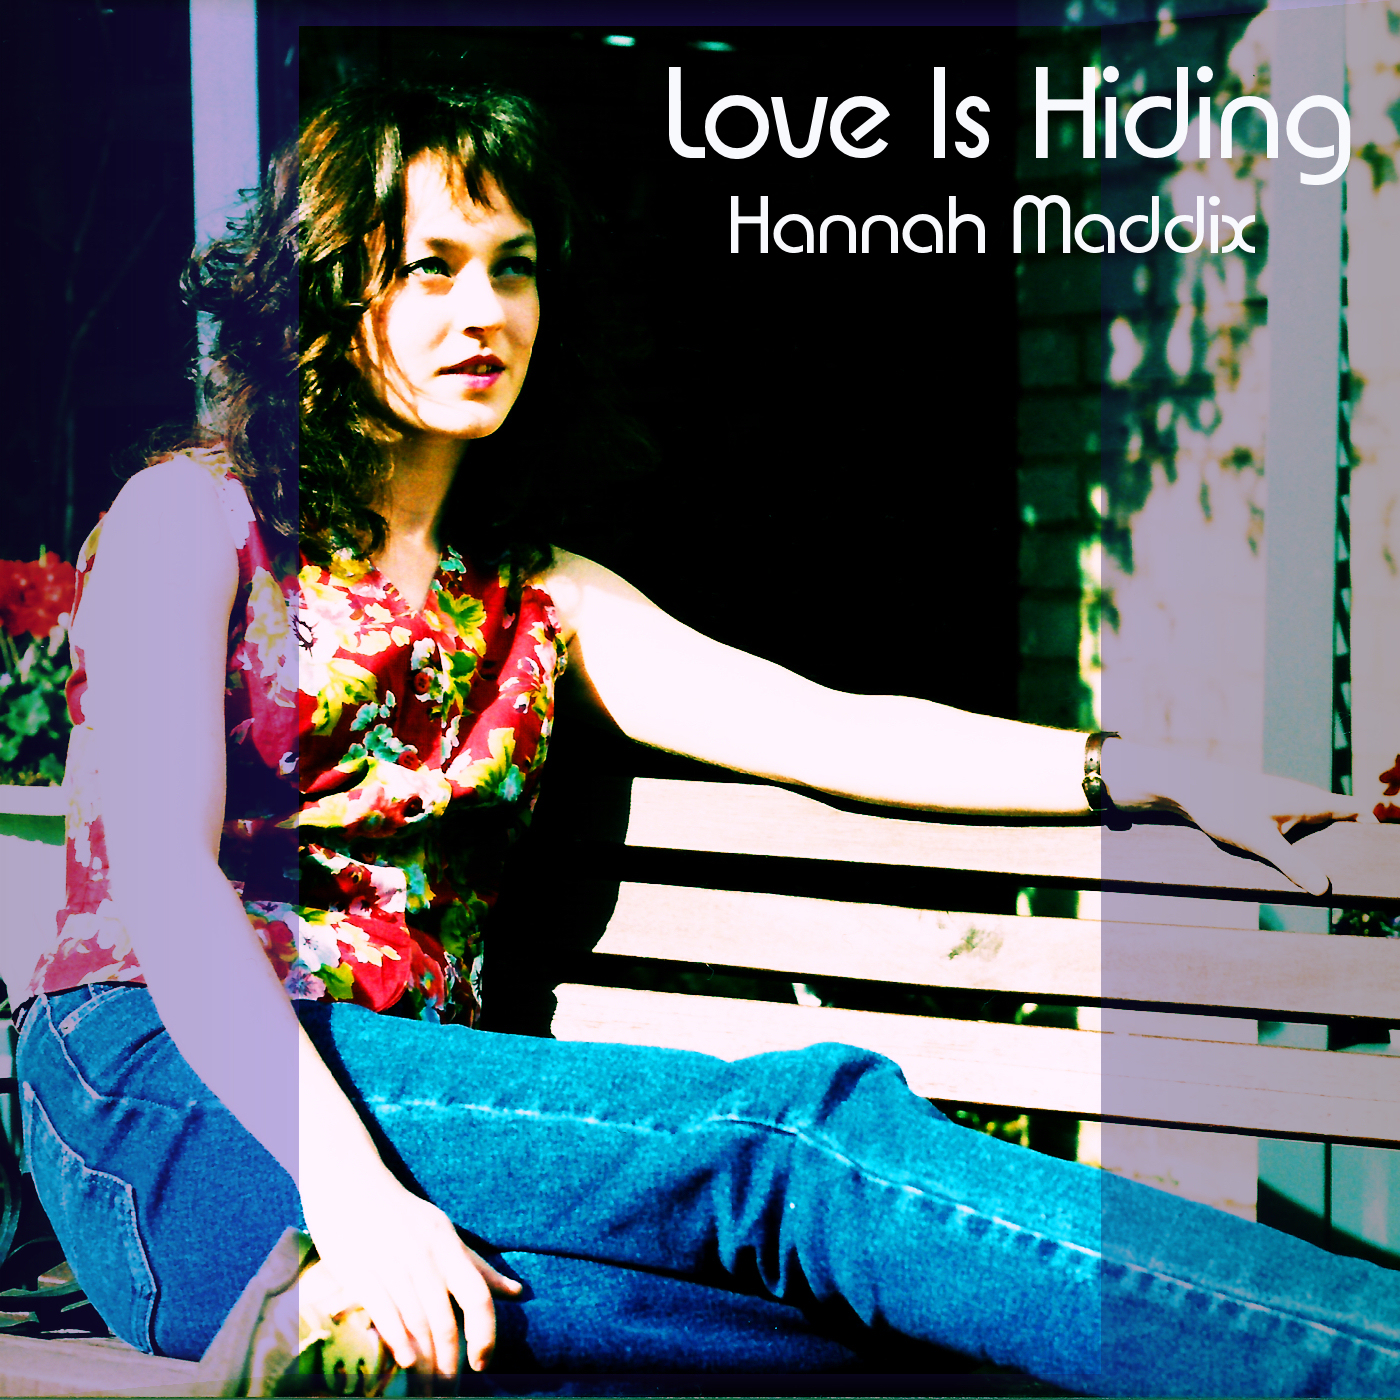 Love Is Hiding by Hannah Maddix